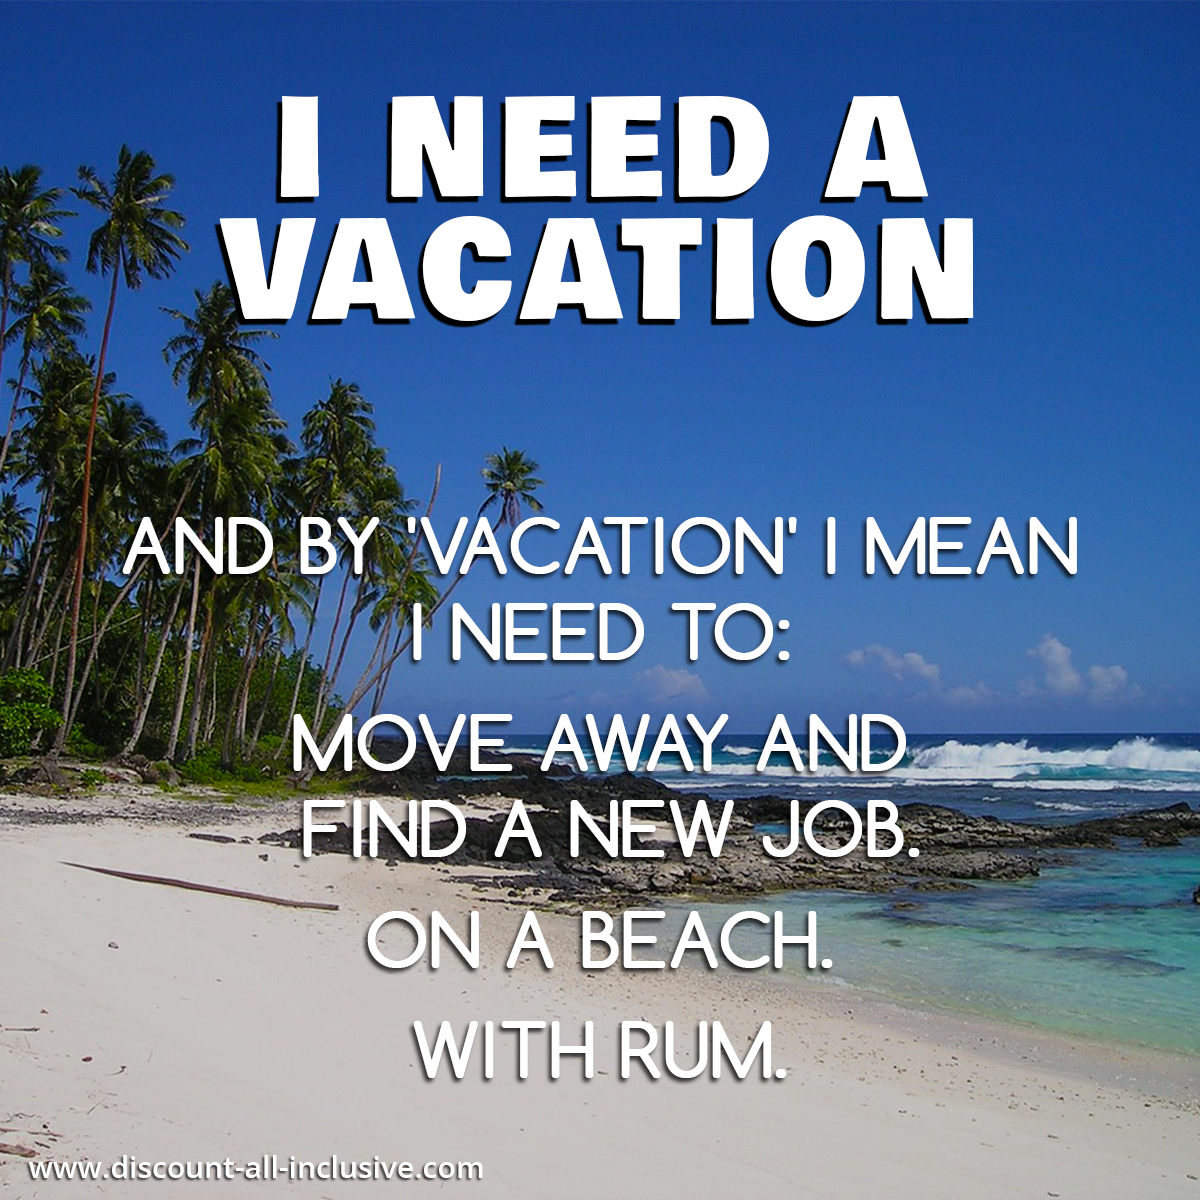 """I Need A Vacation. And By Vacation I Mean I Need To Move"